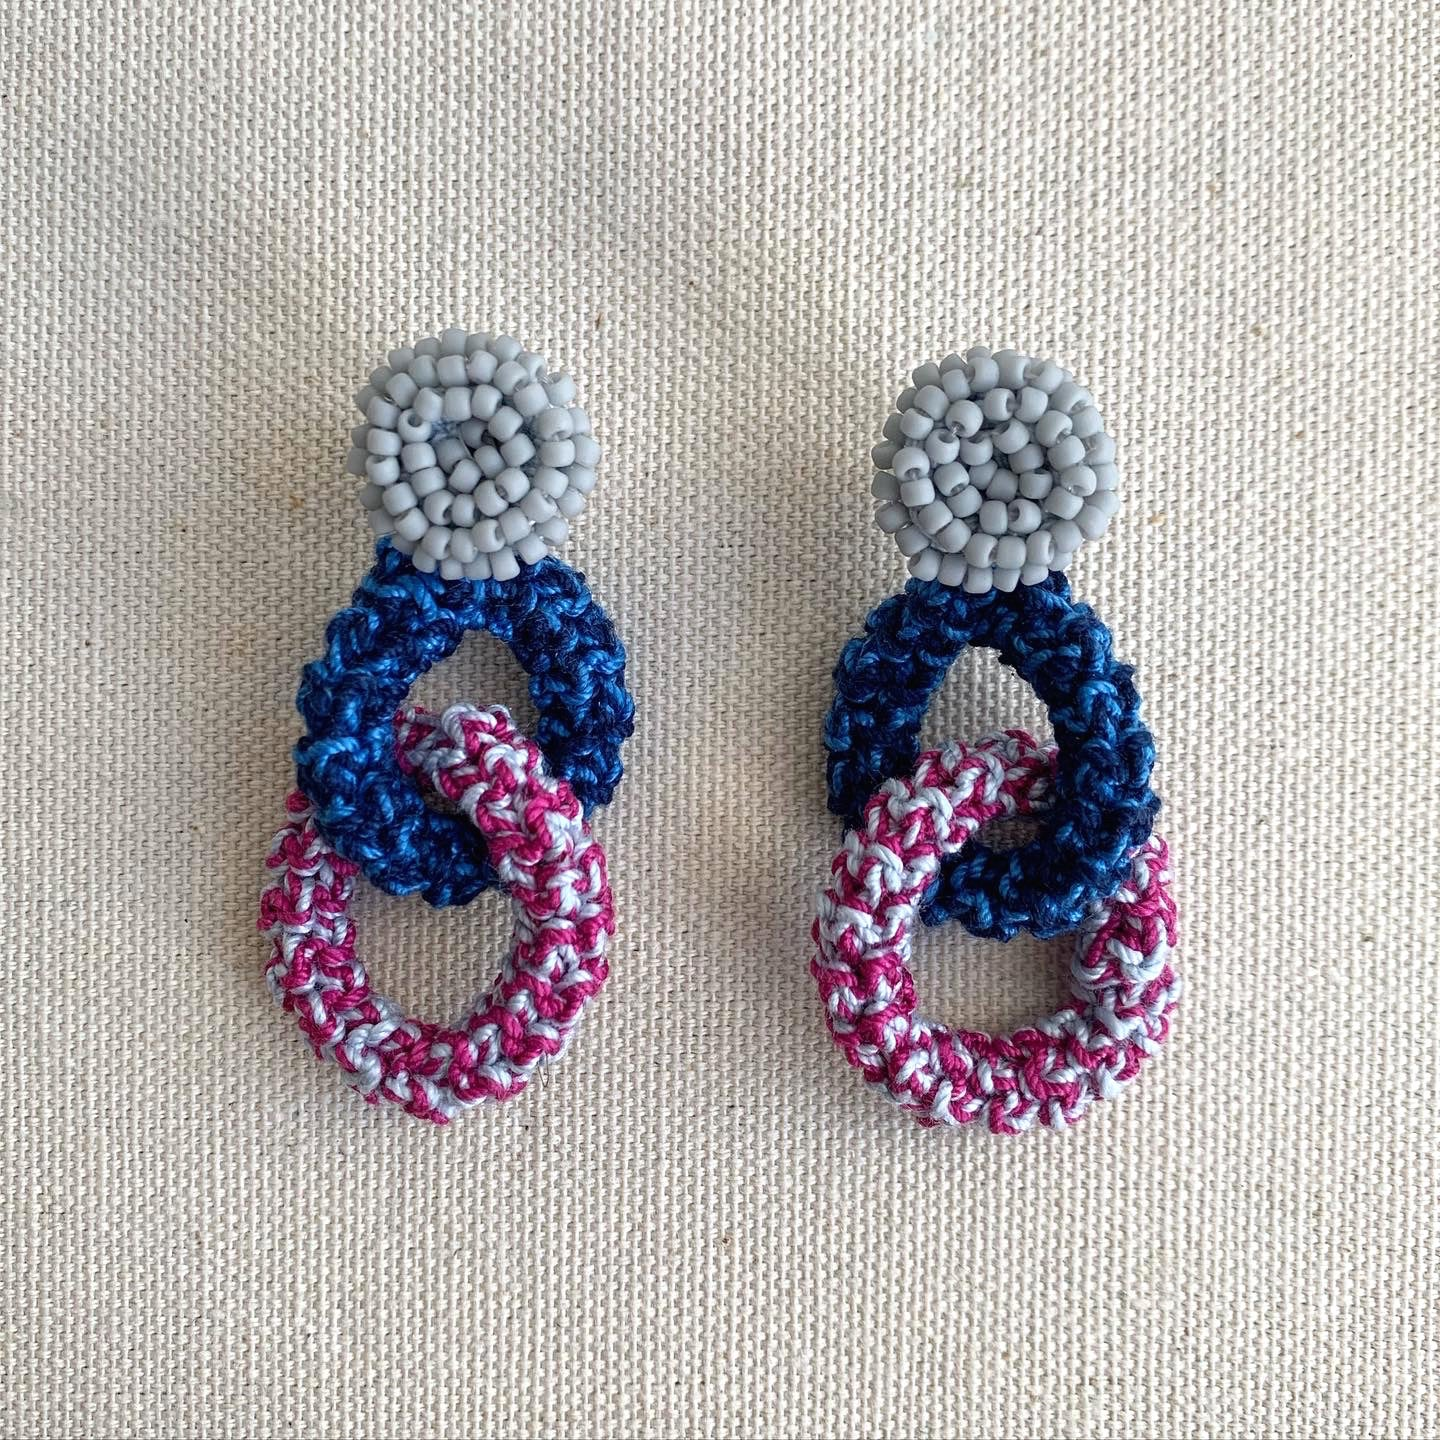 Image of Blue and Magenta Bonded Together Earrings